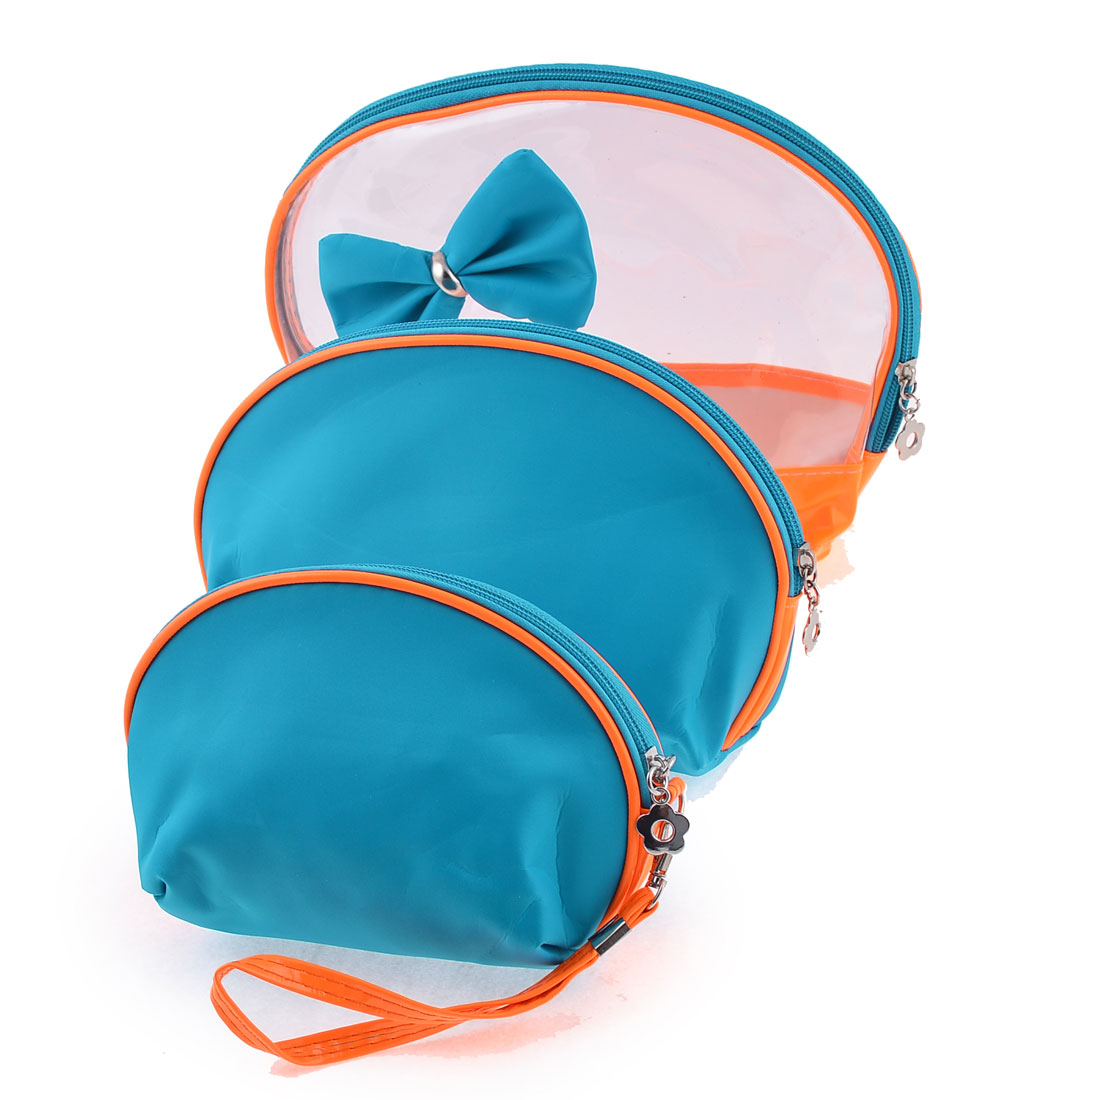 Lady Blue Orange Clear Soft Plastic Nylon Zip Up Makeup Cosmetic Bags 3 in 1